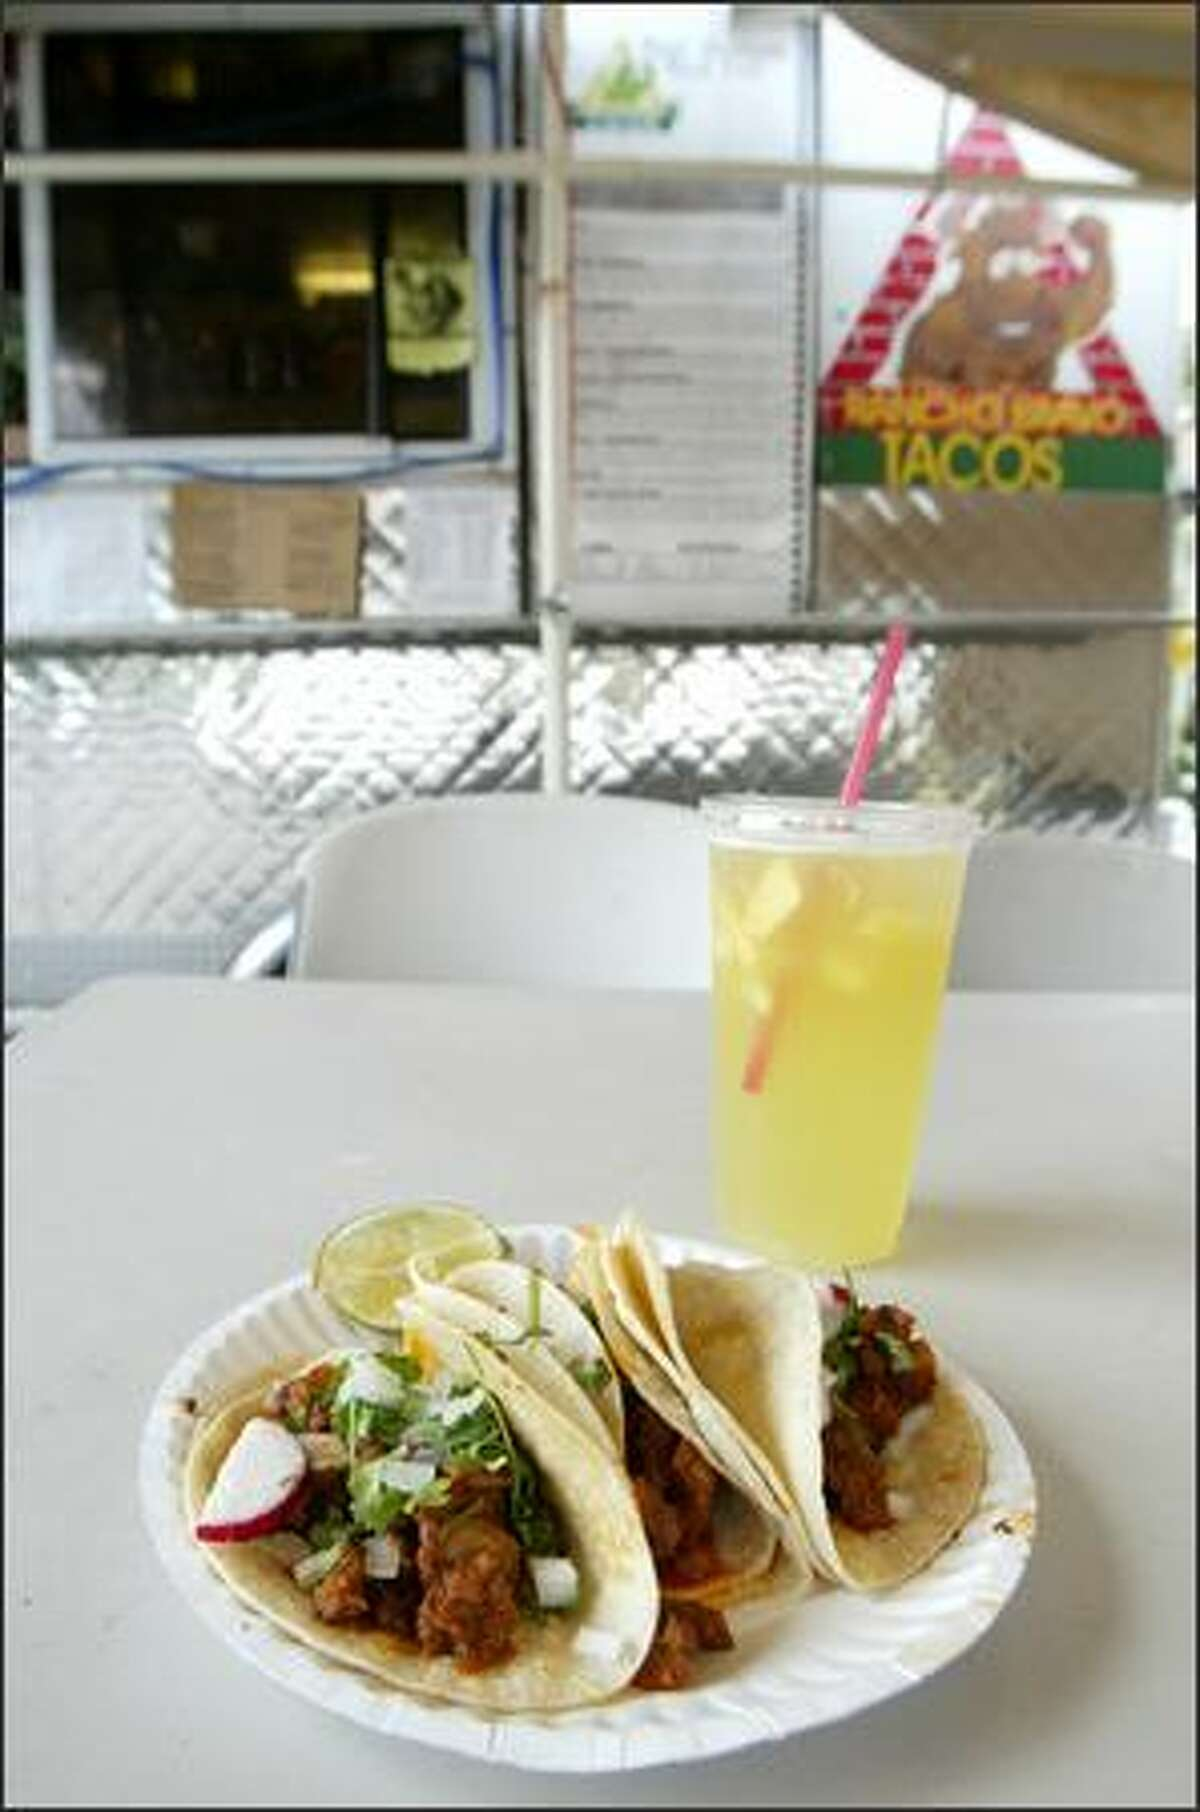 Popular pineapple punch and tacos al pastor, at just $1.75 each, have helped attract a diverse clientele at Rancho Bravo Tacos in Wallingford.